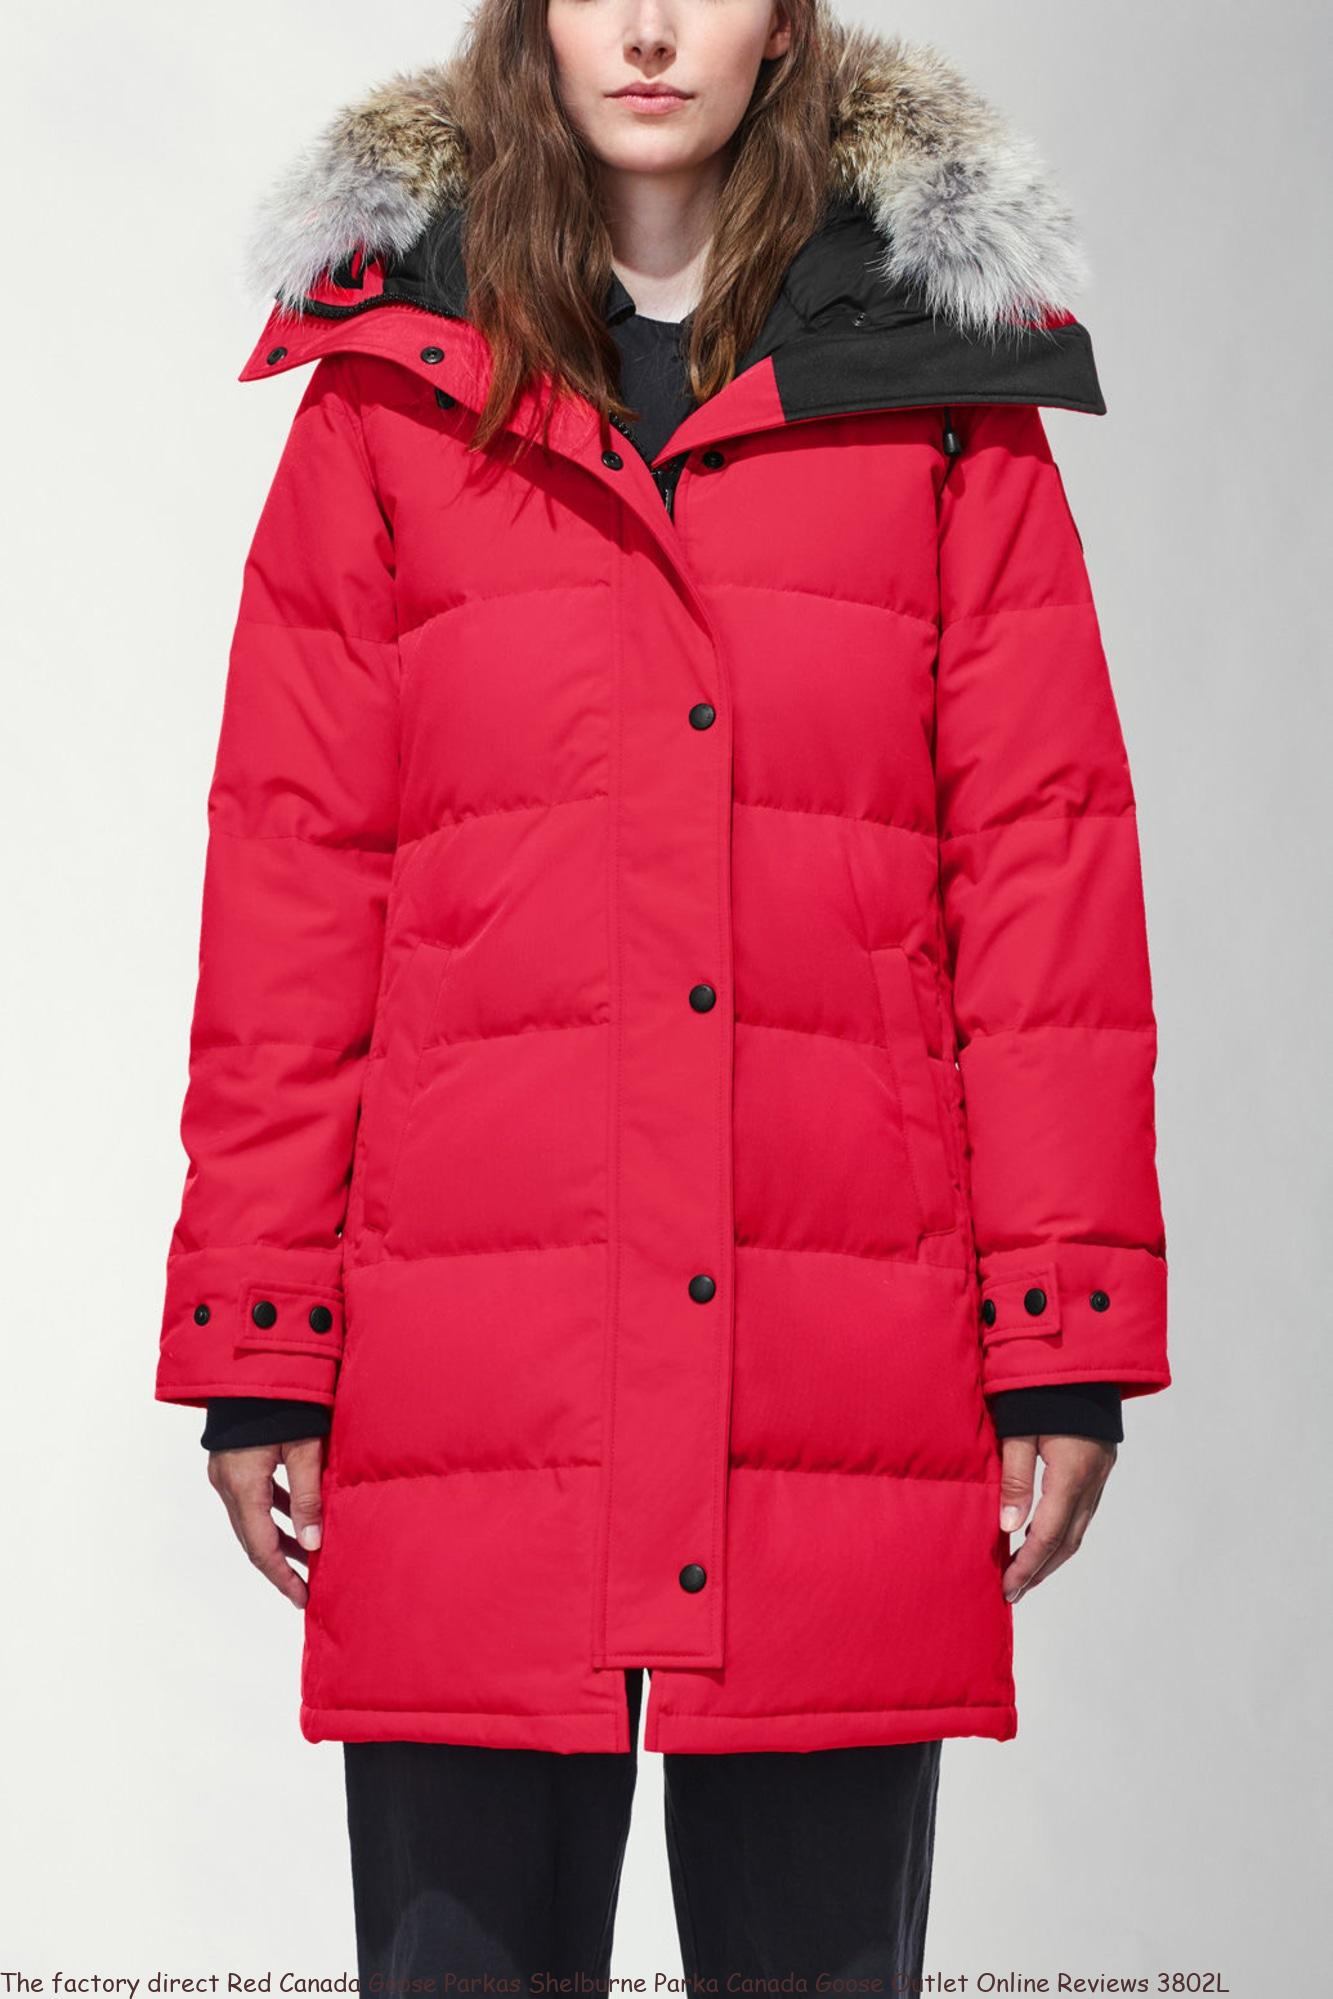 The factory direct Red Canada Goose Parkas Shelburne Parka Canada Goose Outlet Online Reviews 3802L